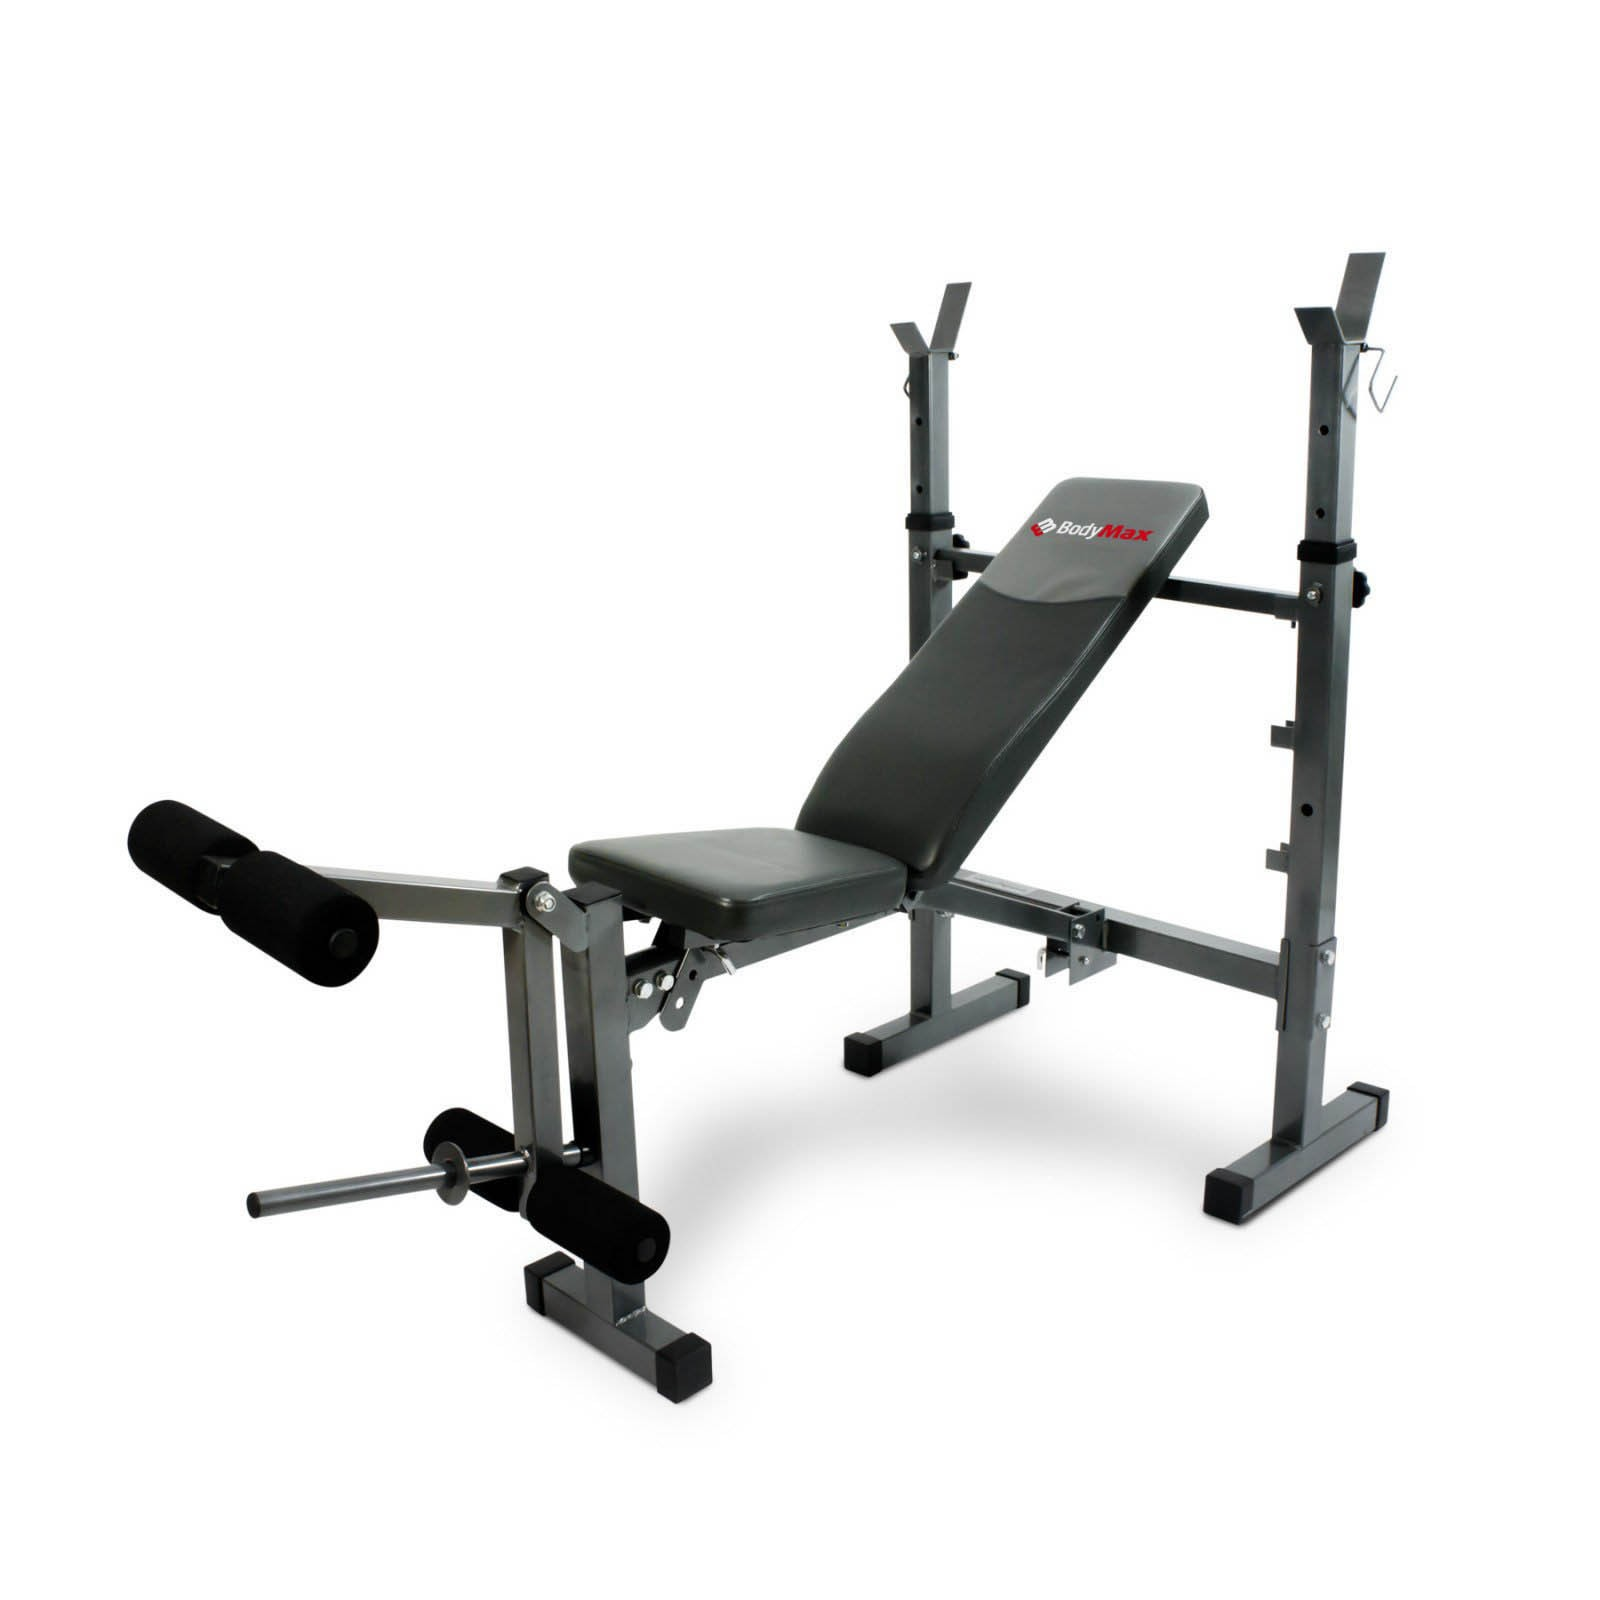 Workout Bench Set | Weight Bench Sale | Powerhouse Weight Bench